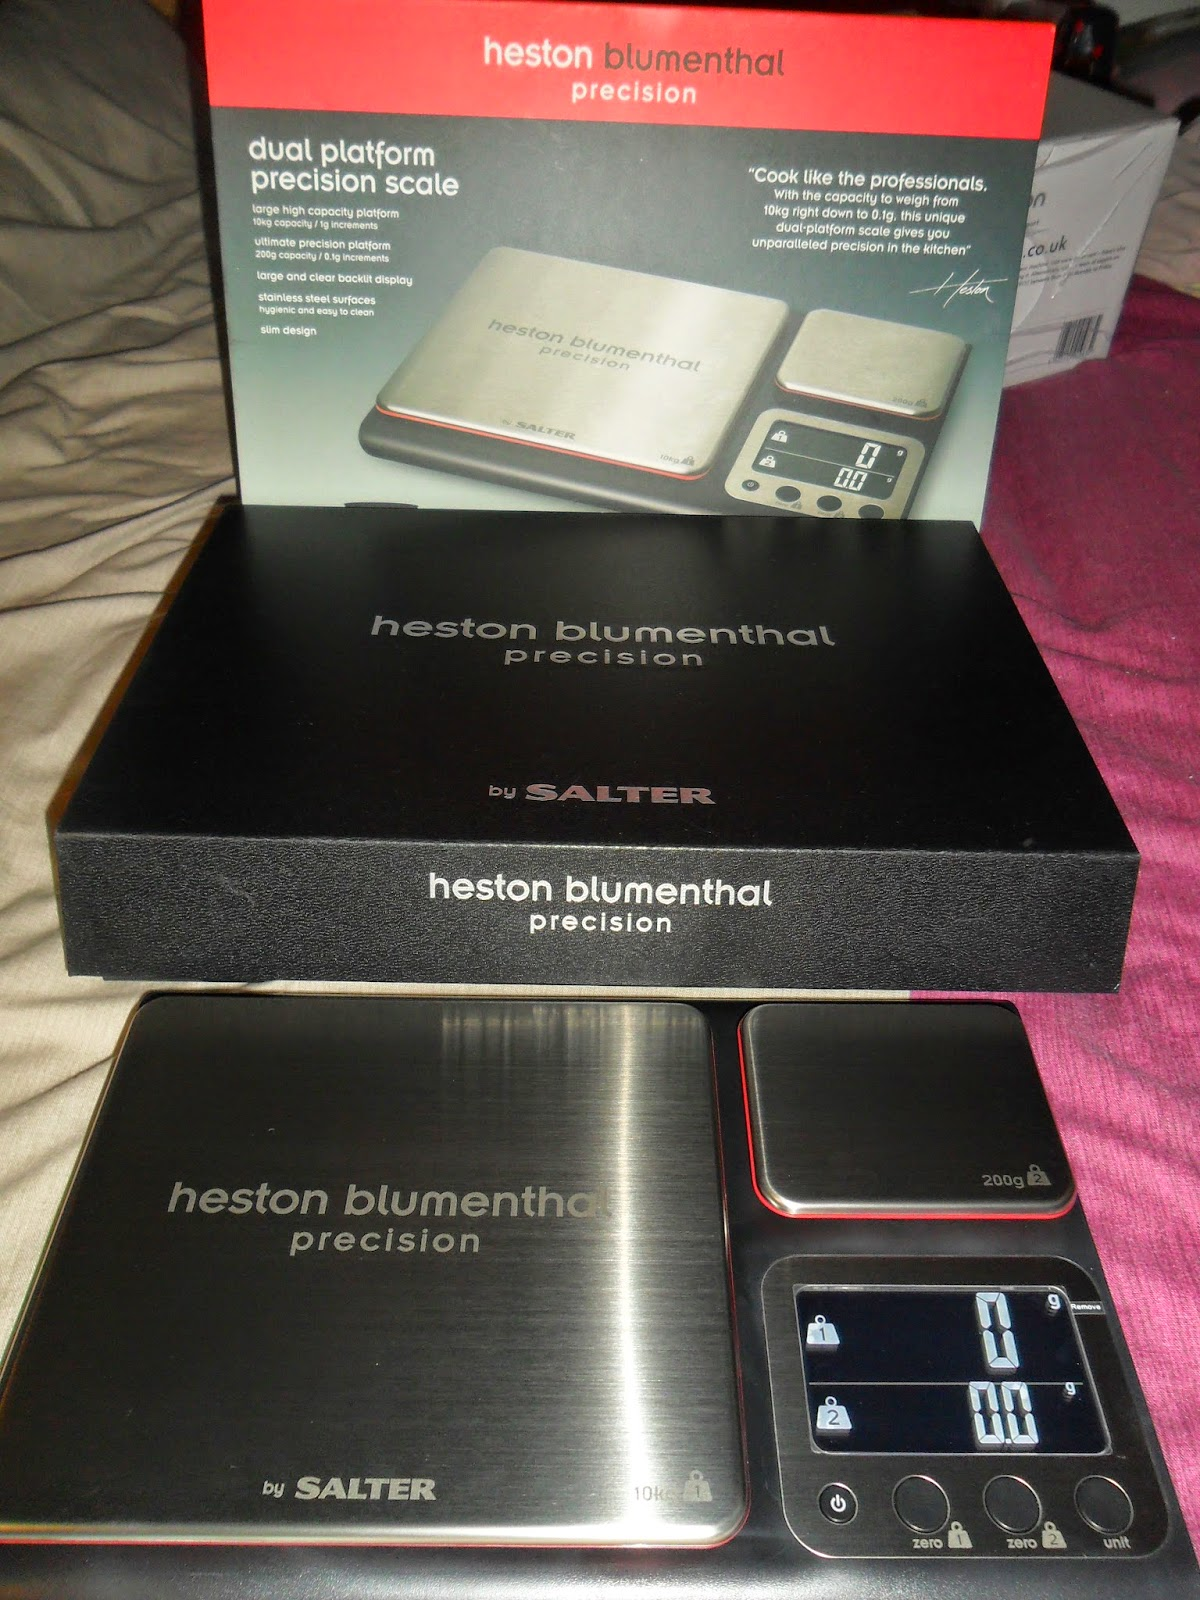 heston blumenthal dual precision scales